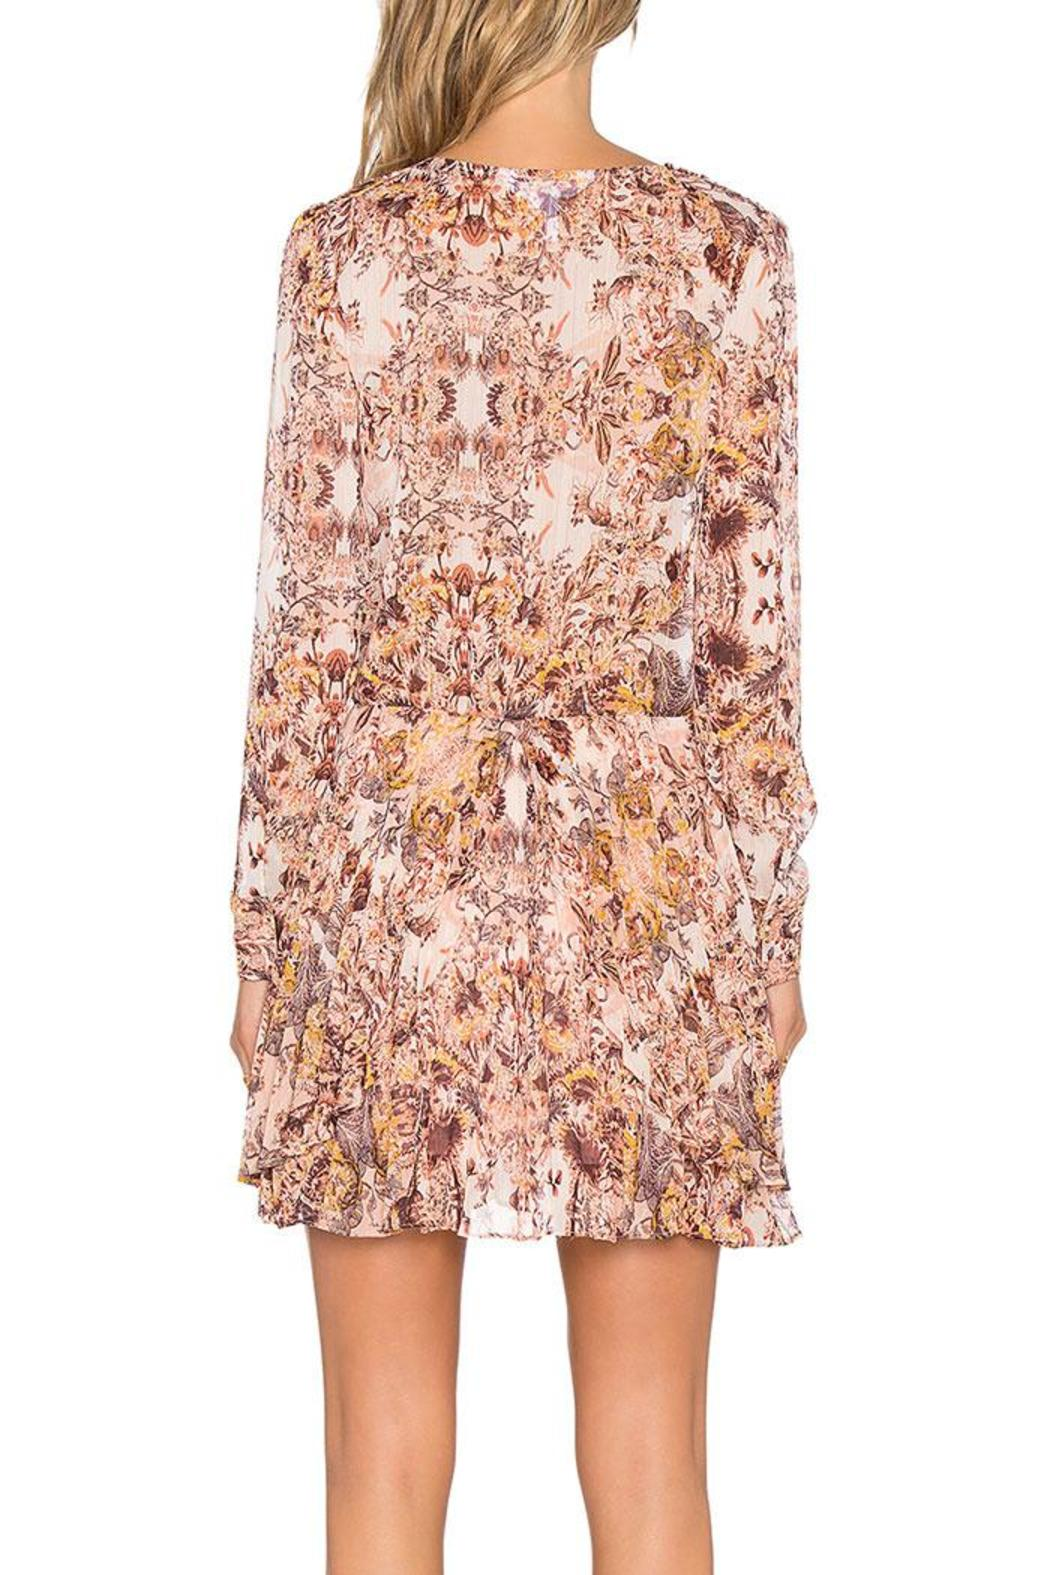 BCBGeneration Printed Mini Dress - Side Cropped Image